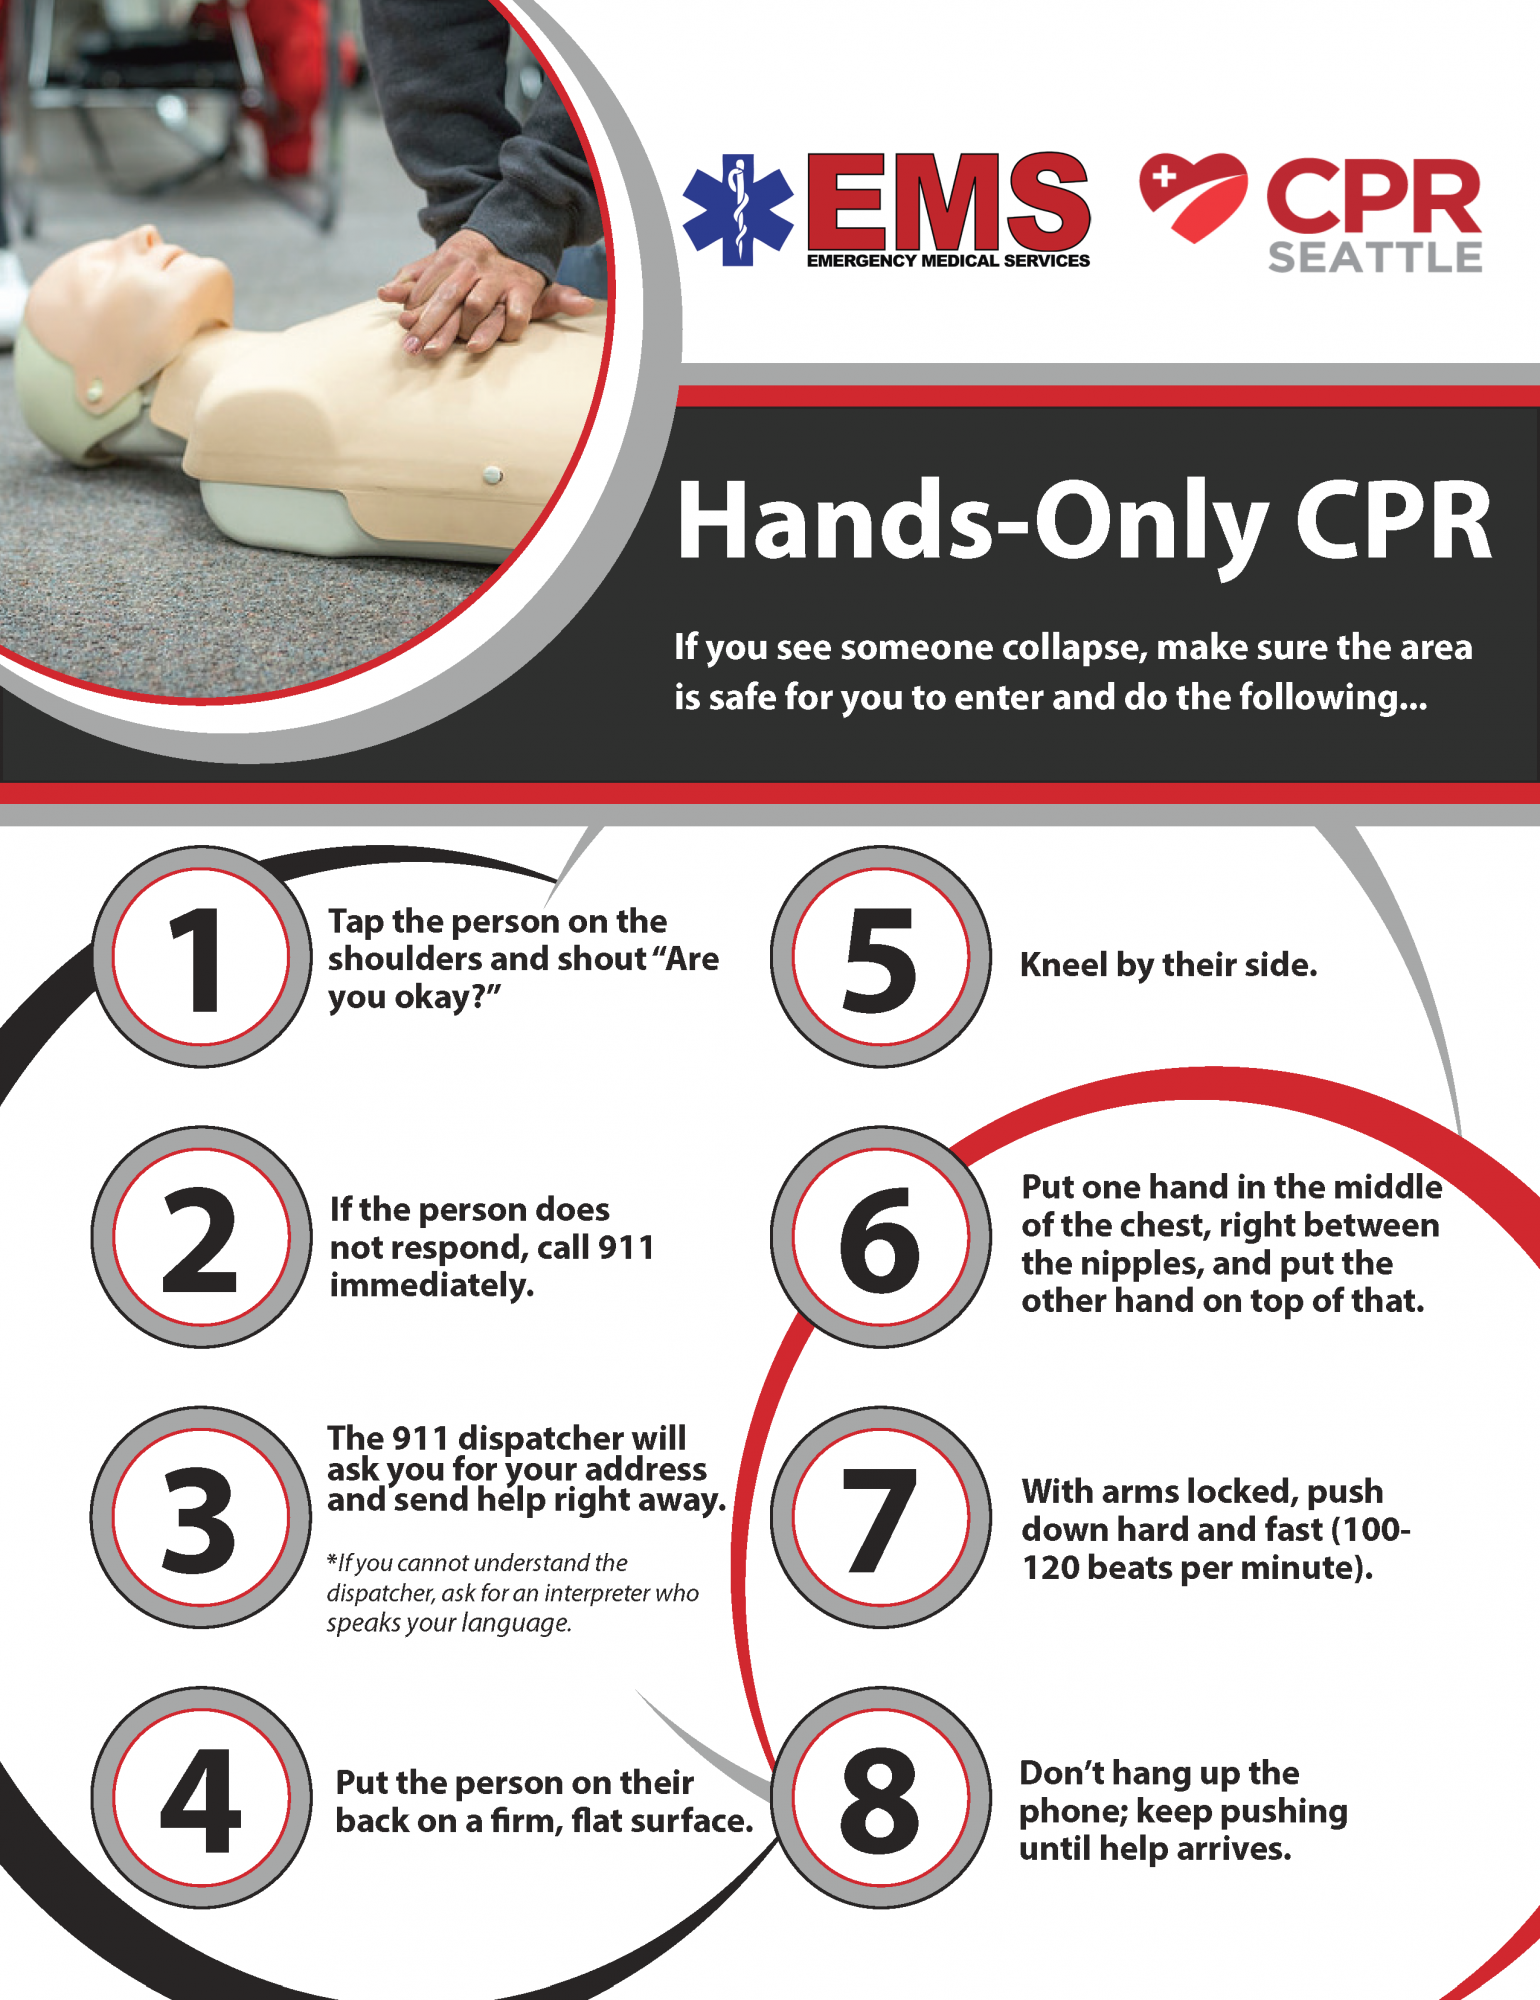 Cpr Seattle Multi Language Hands Only Cpr Materials